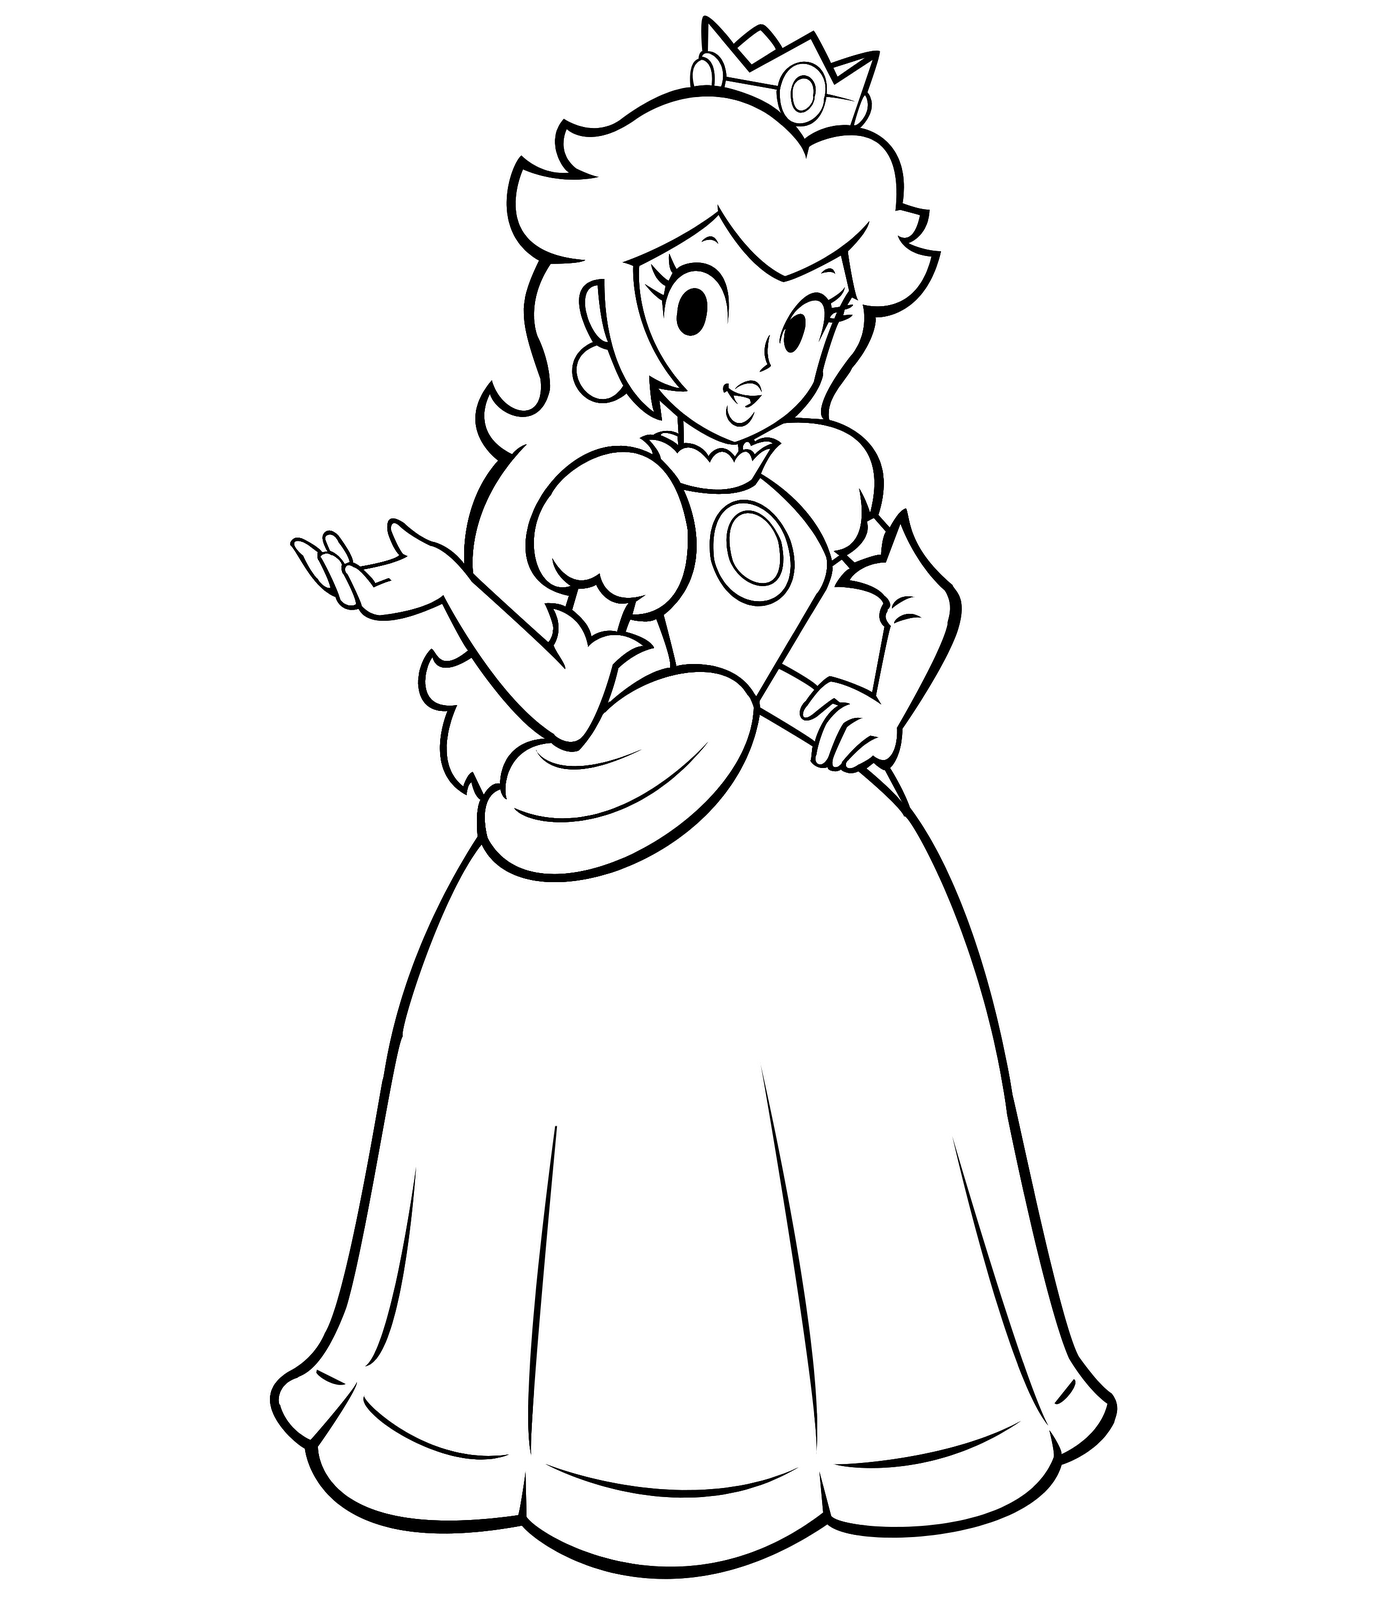 coloring pages princess peach baby princess peach coloring play free coloring game online princess coloring pages peach